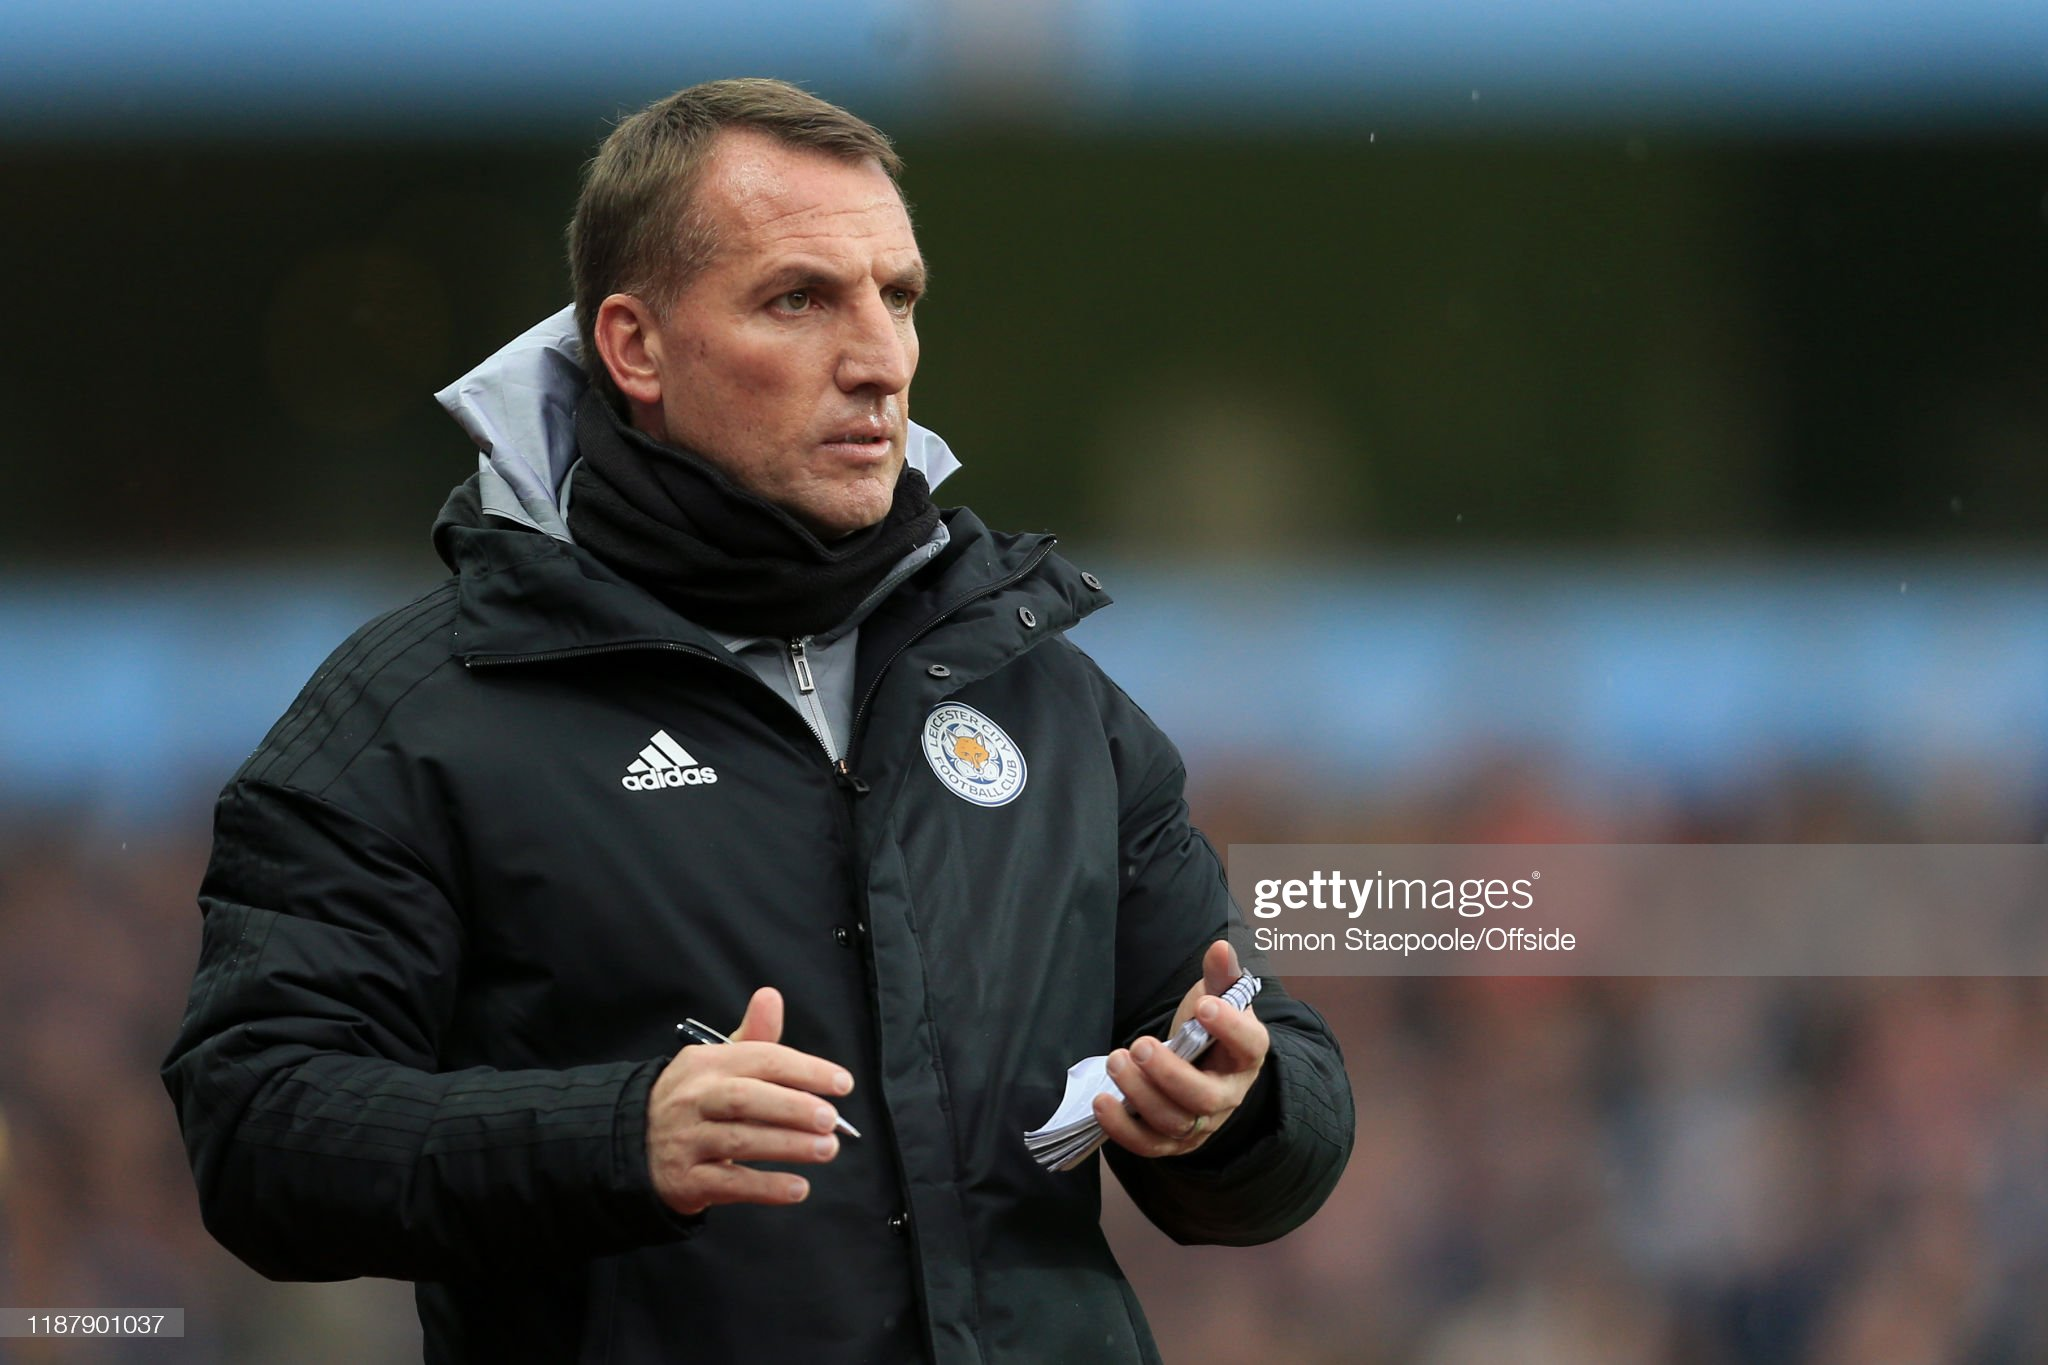 leicester-manager-brendan-rodgers-looks-